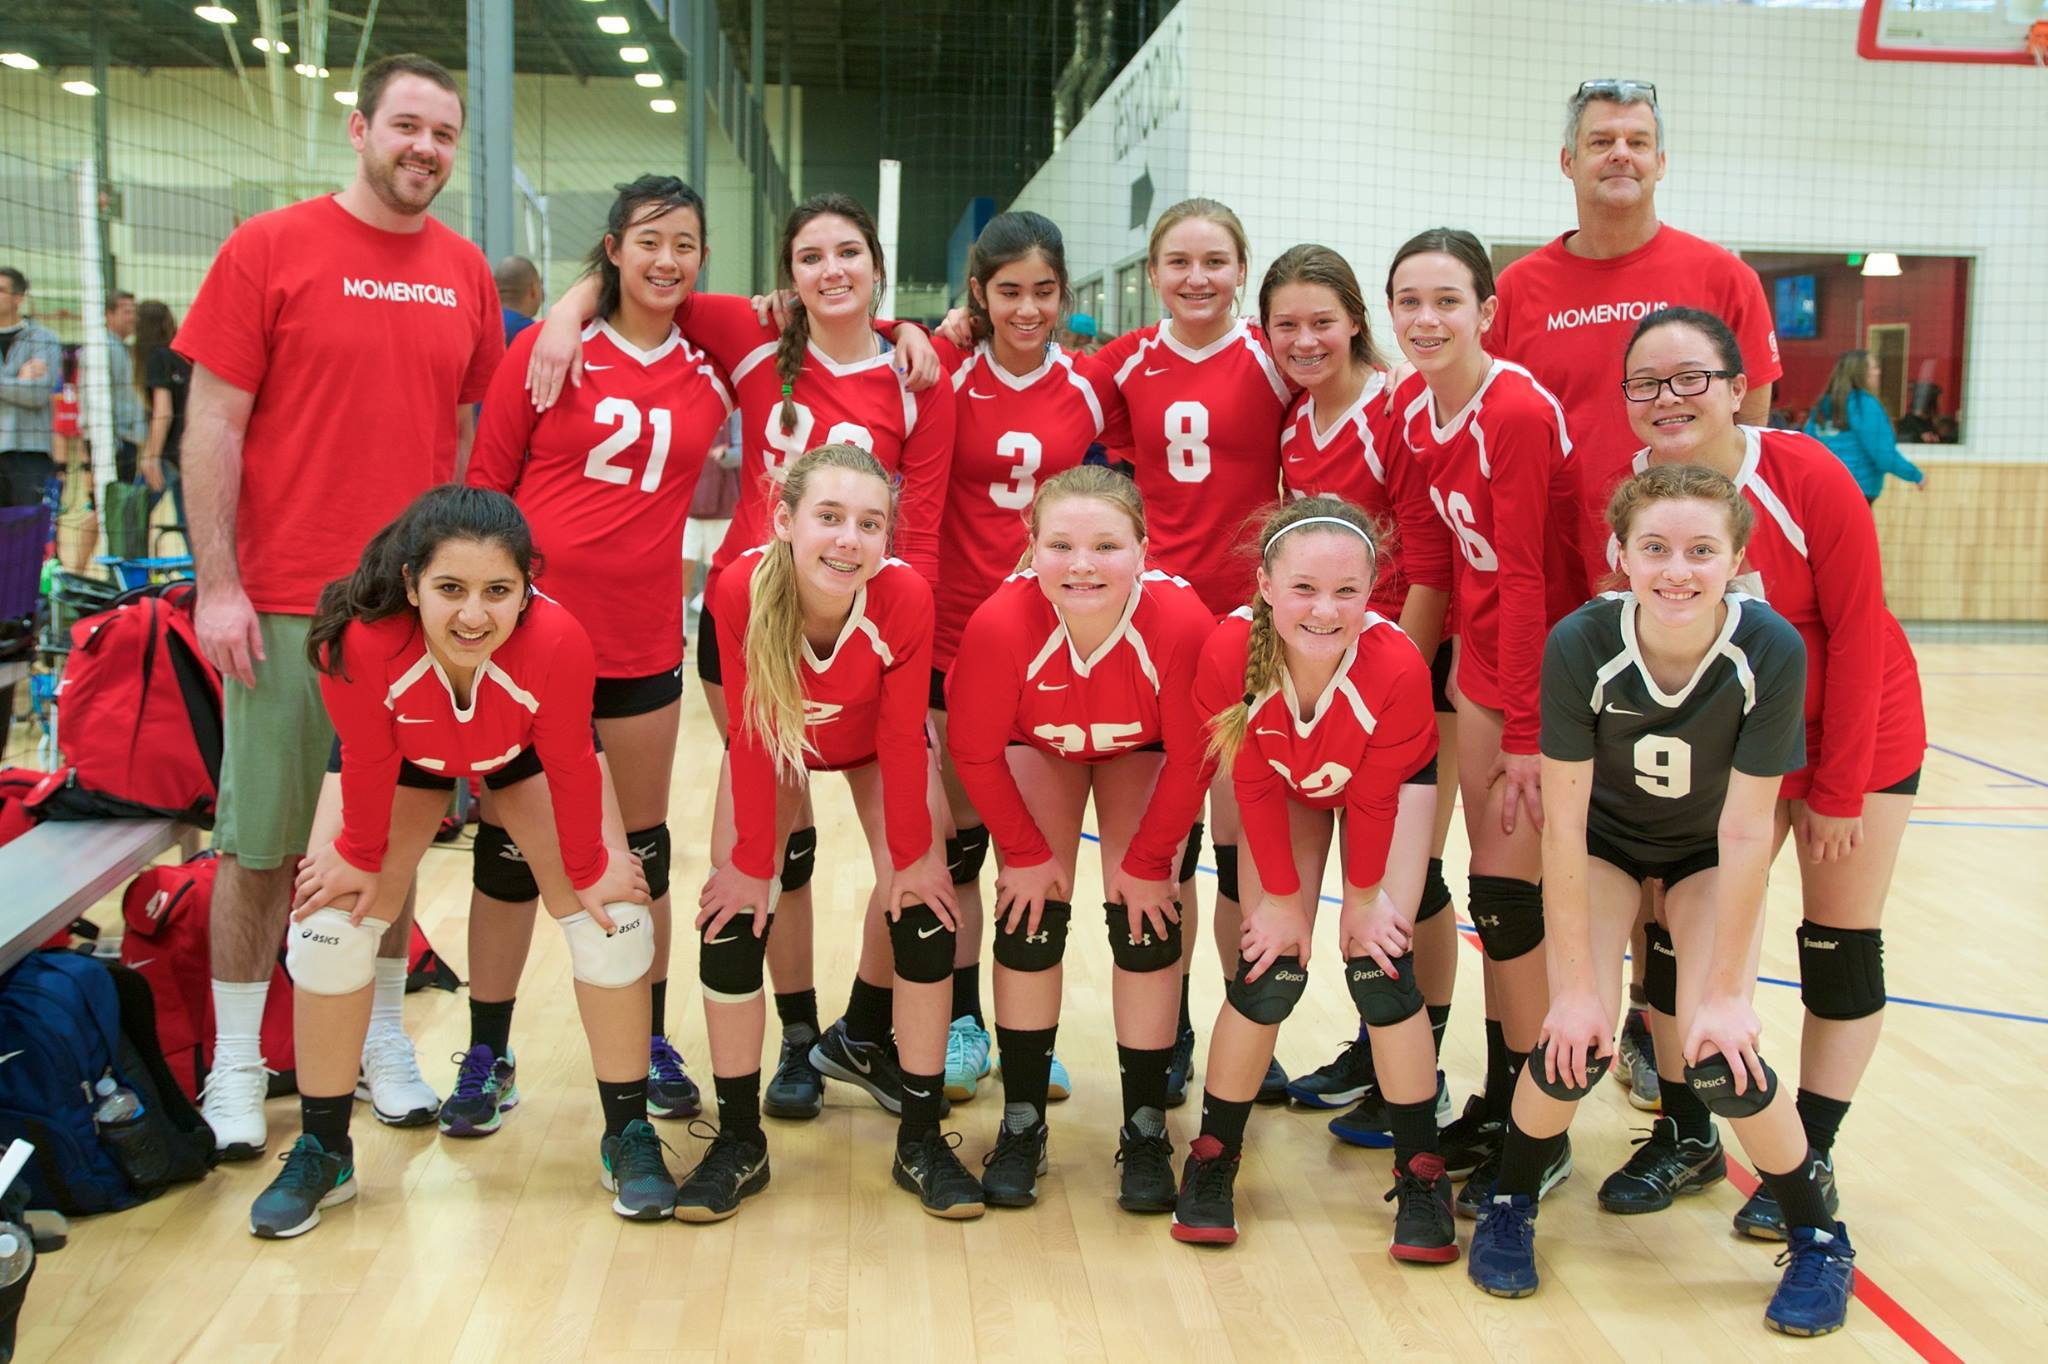 Momentous Volleyball Club Schedule & Reviews | ActivityHero